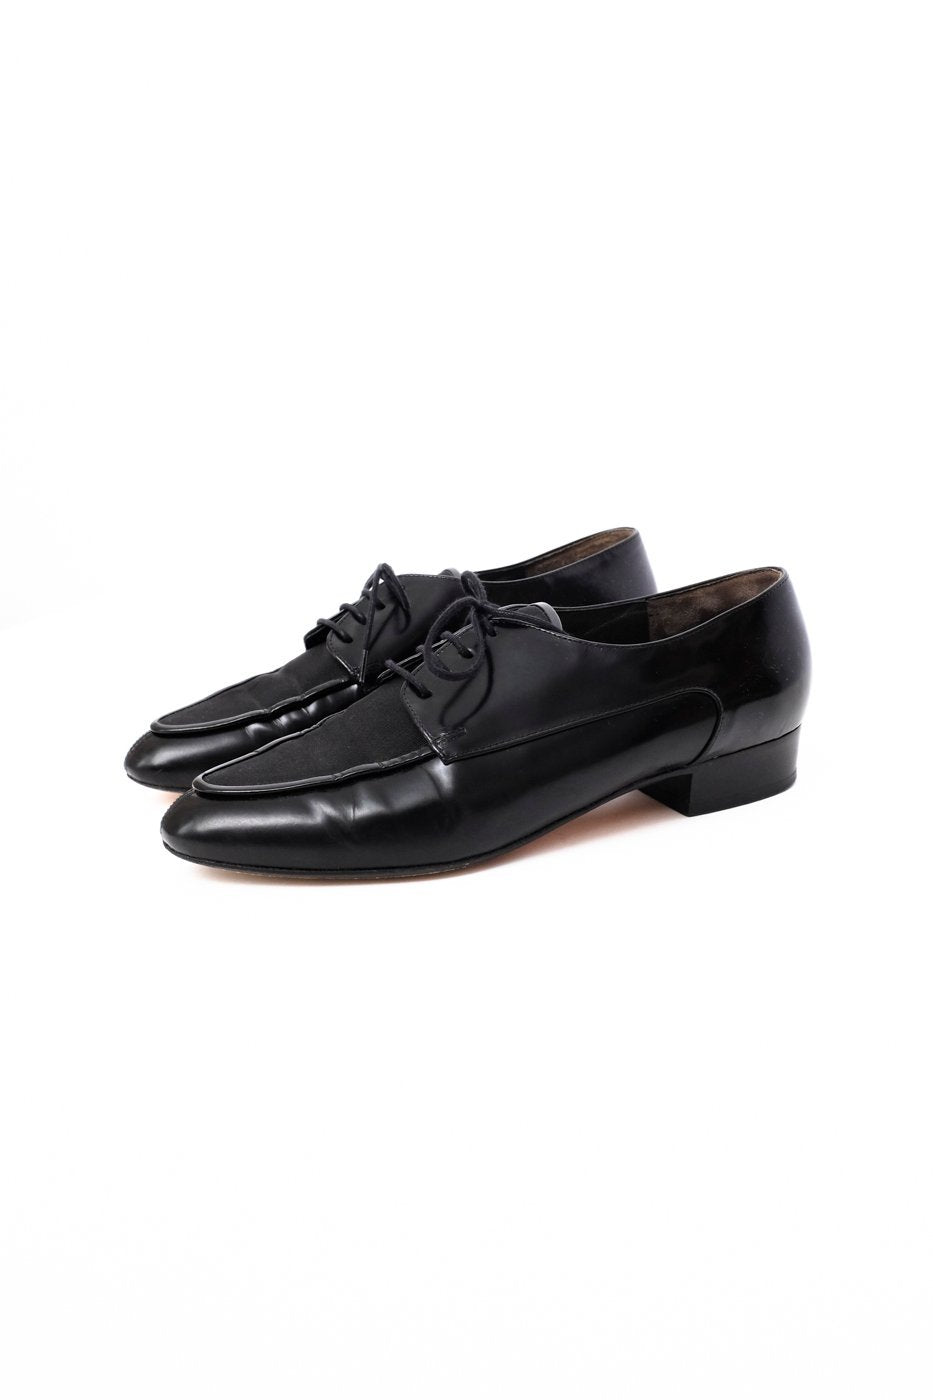 0391_POINTY BLACK PATENT LEATHER LACE UP SHOES 38